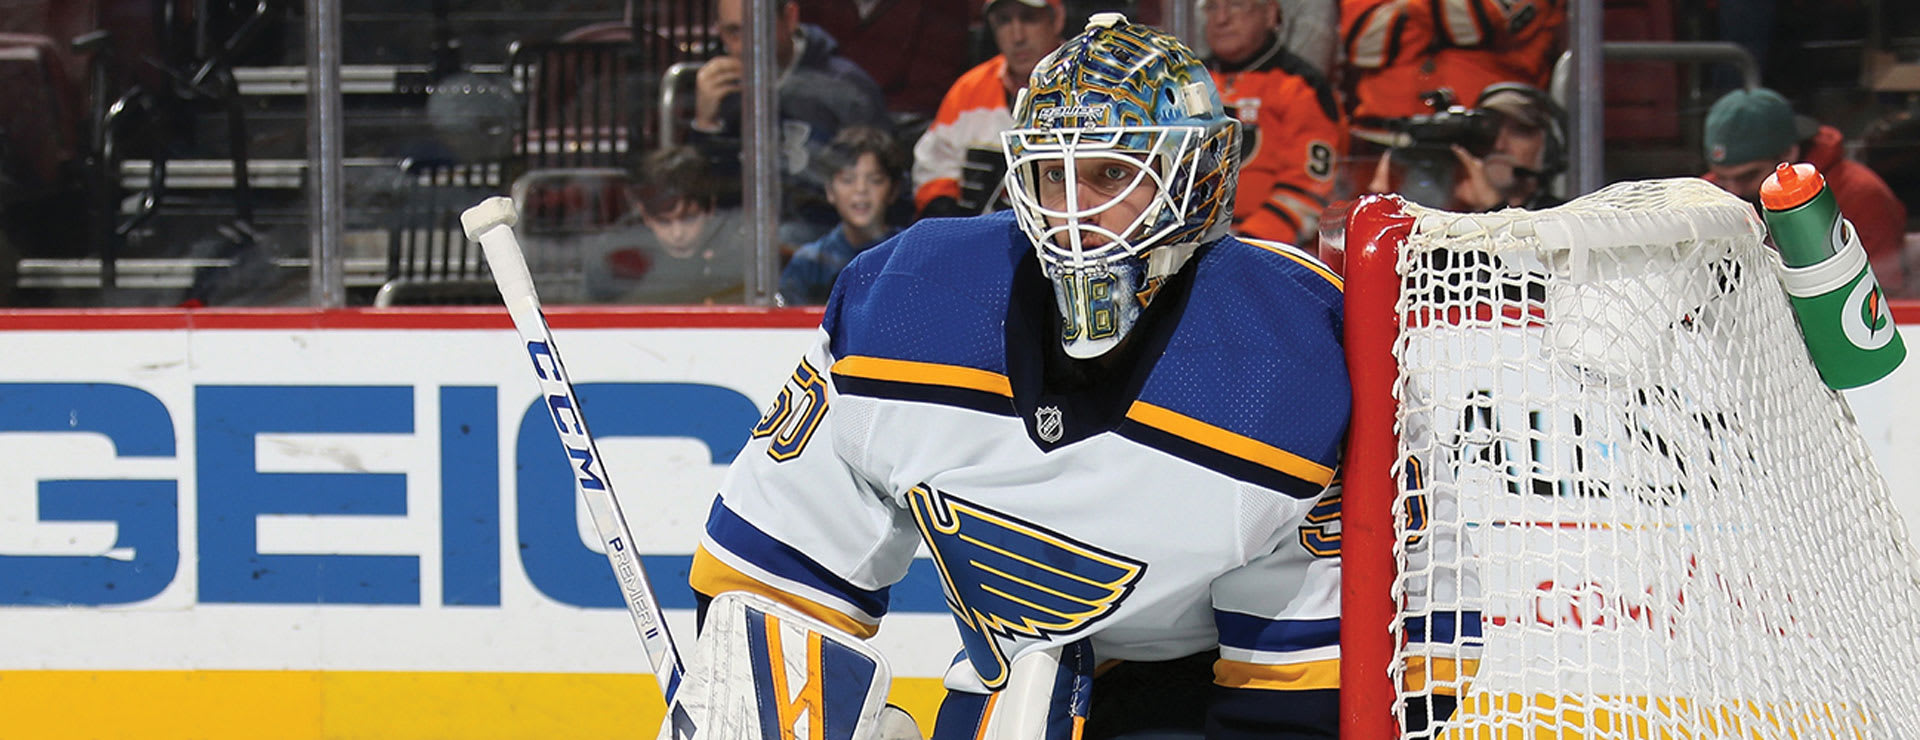 2ed2087ae Binnington is The MeiGray Group ECHL Alumnus of the Month